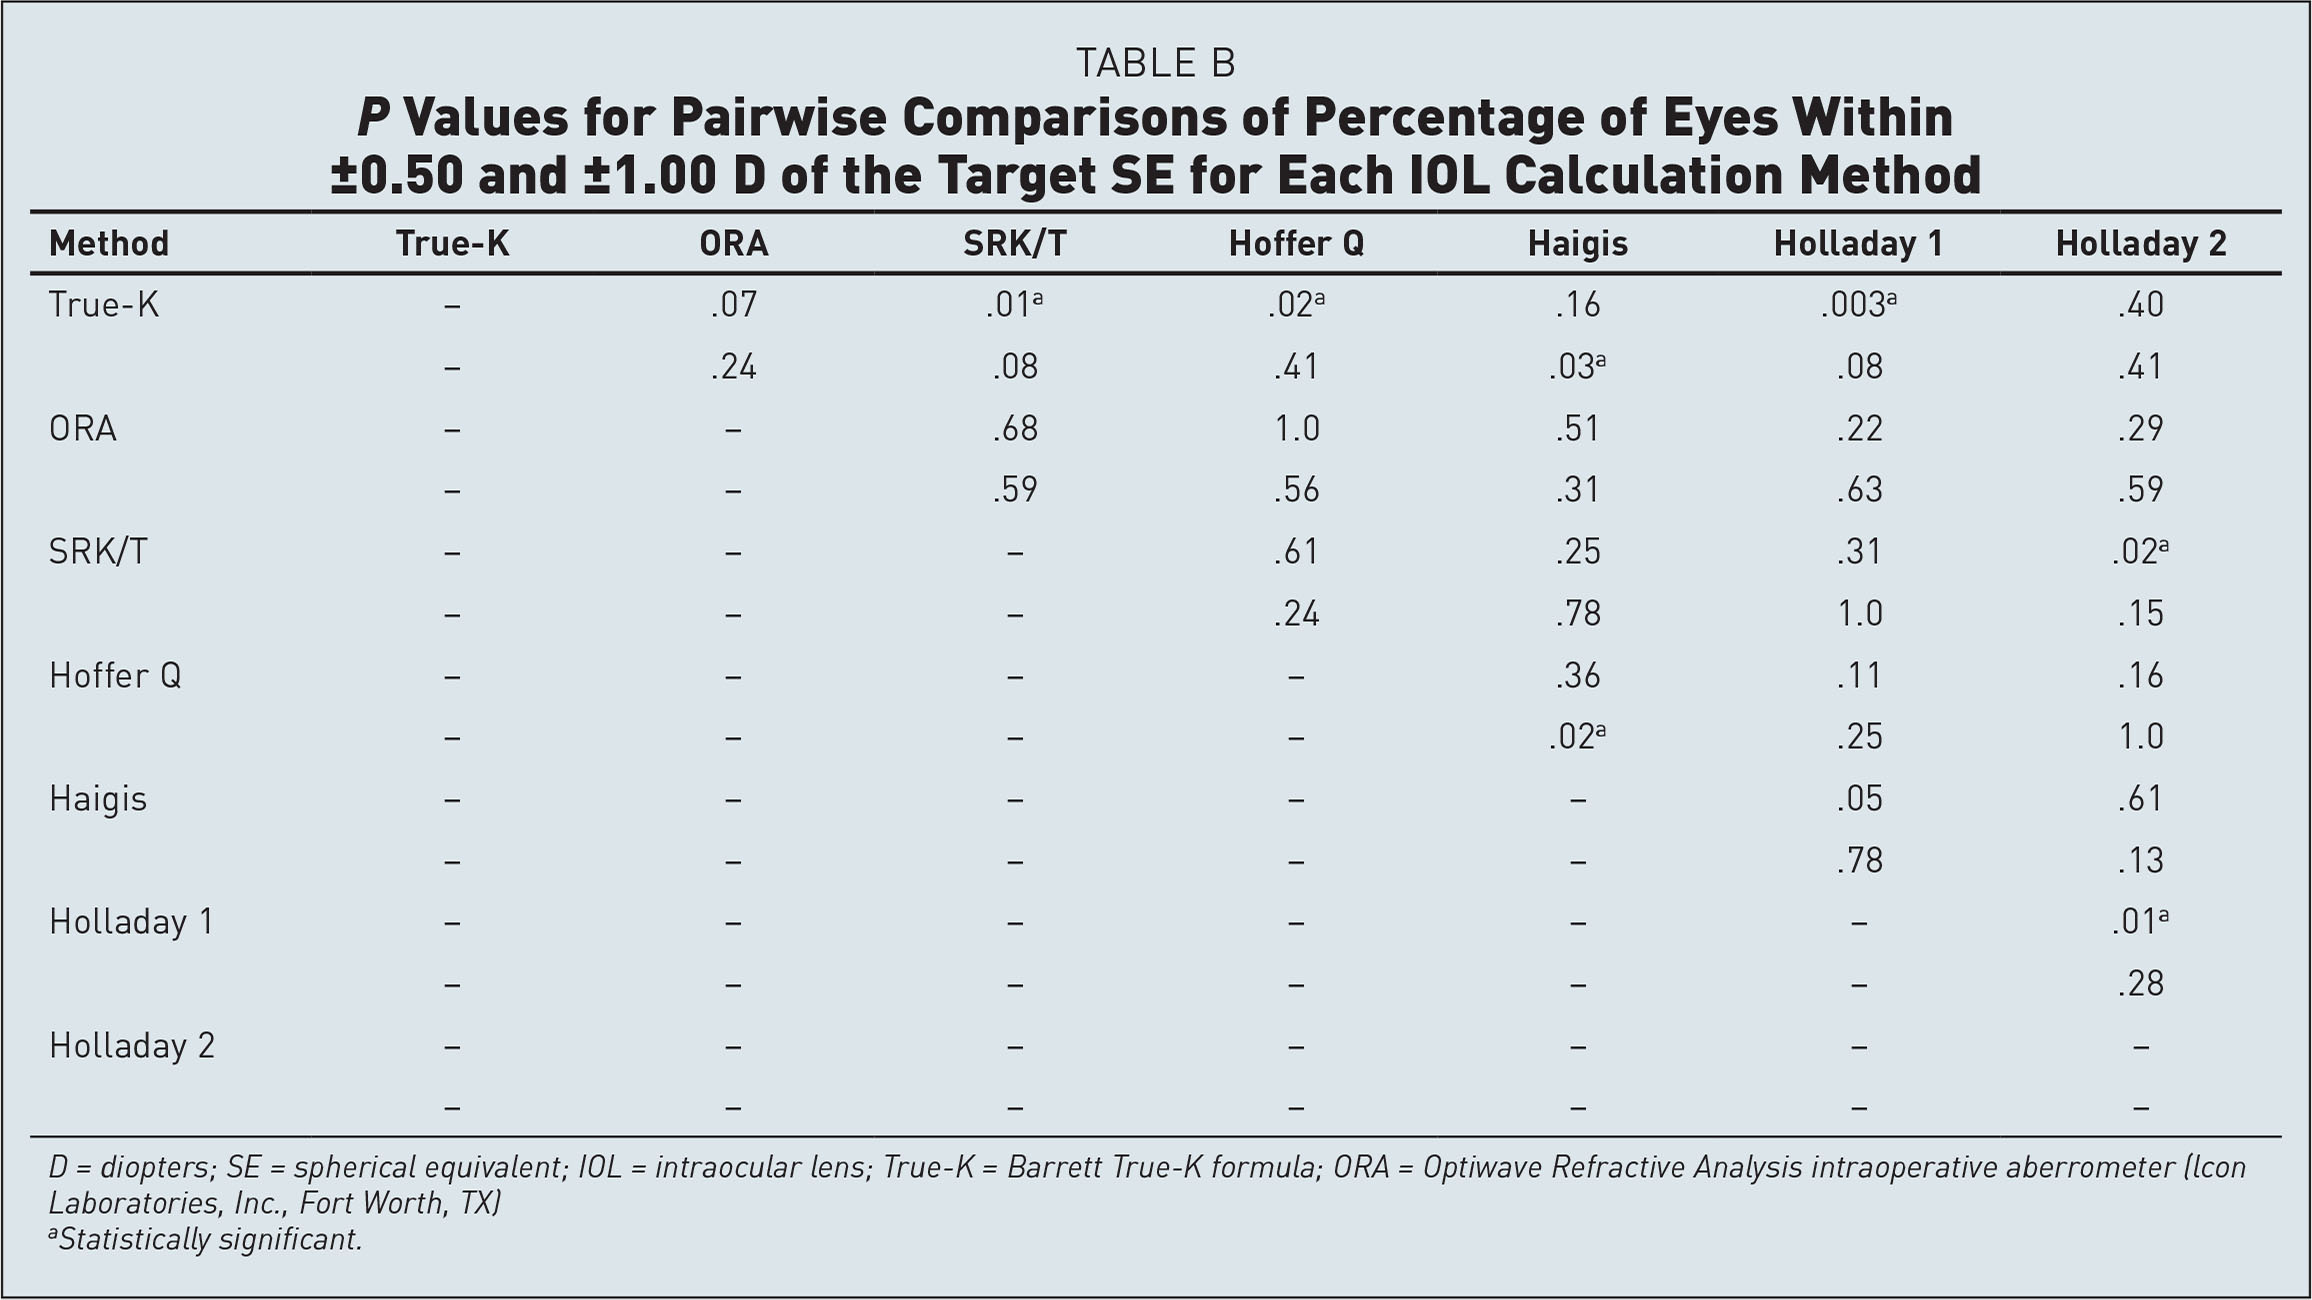 P Values for Pairwise Comparisons of Percentage of Eyes Within ±0.50 and ±1.00 D of the Target SE for Each IOL Calculation Method